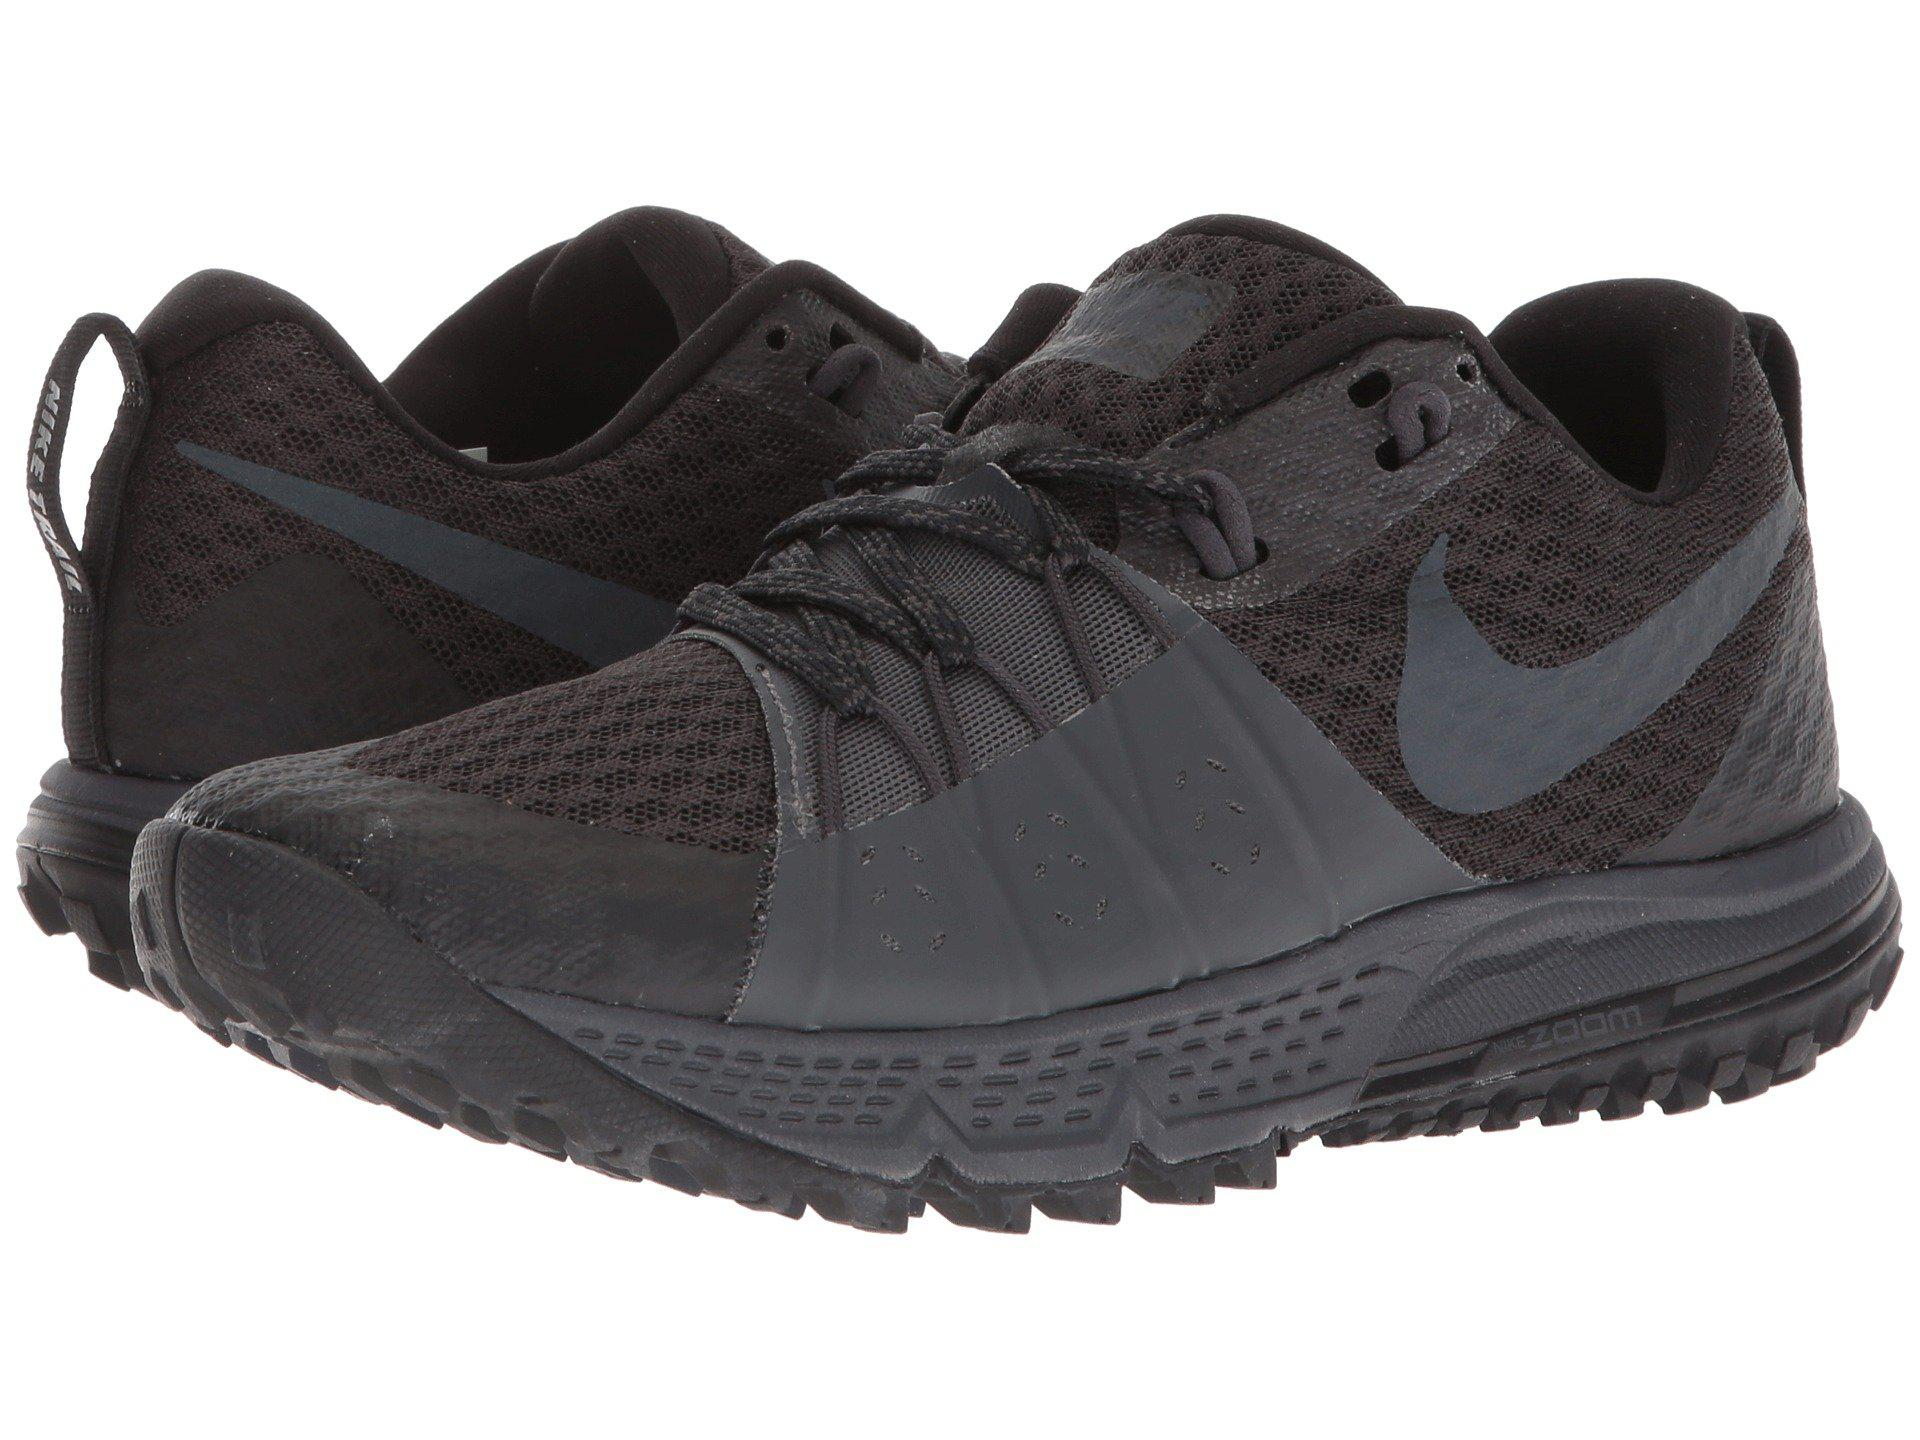 Lyst - Nike Air Zoom Wildhorse 4 (black anthracite anthracite ... 55b43e340c